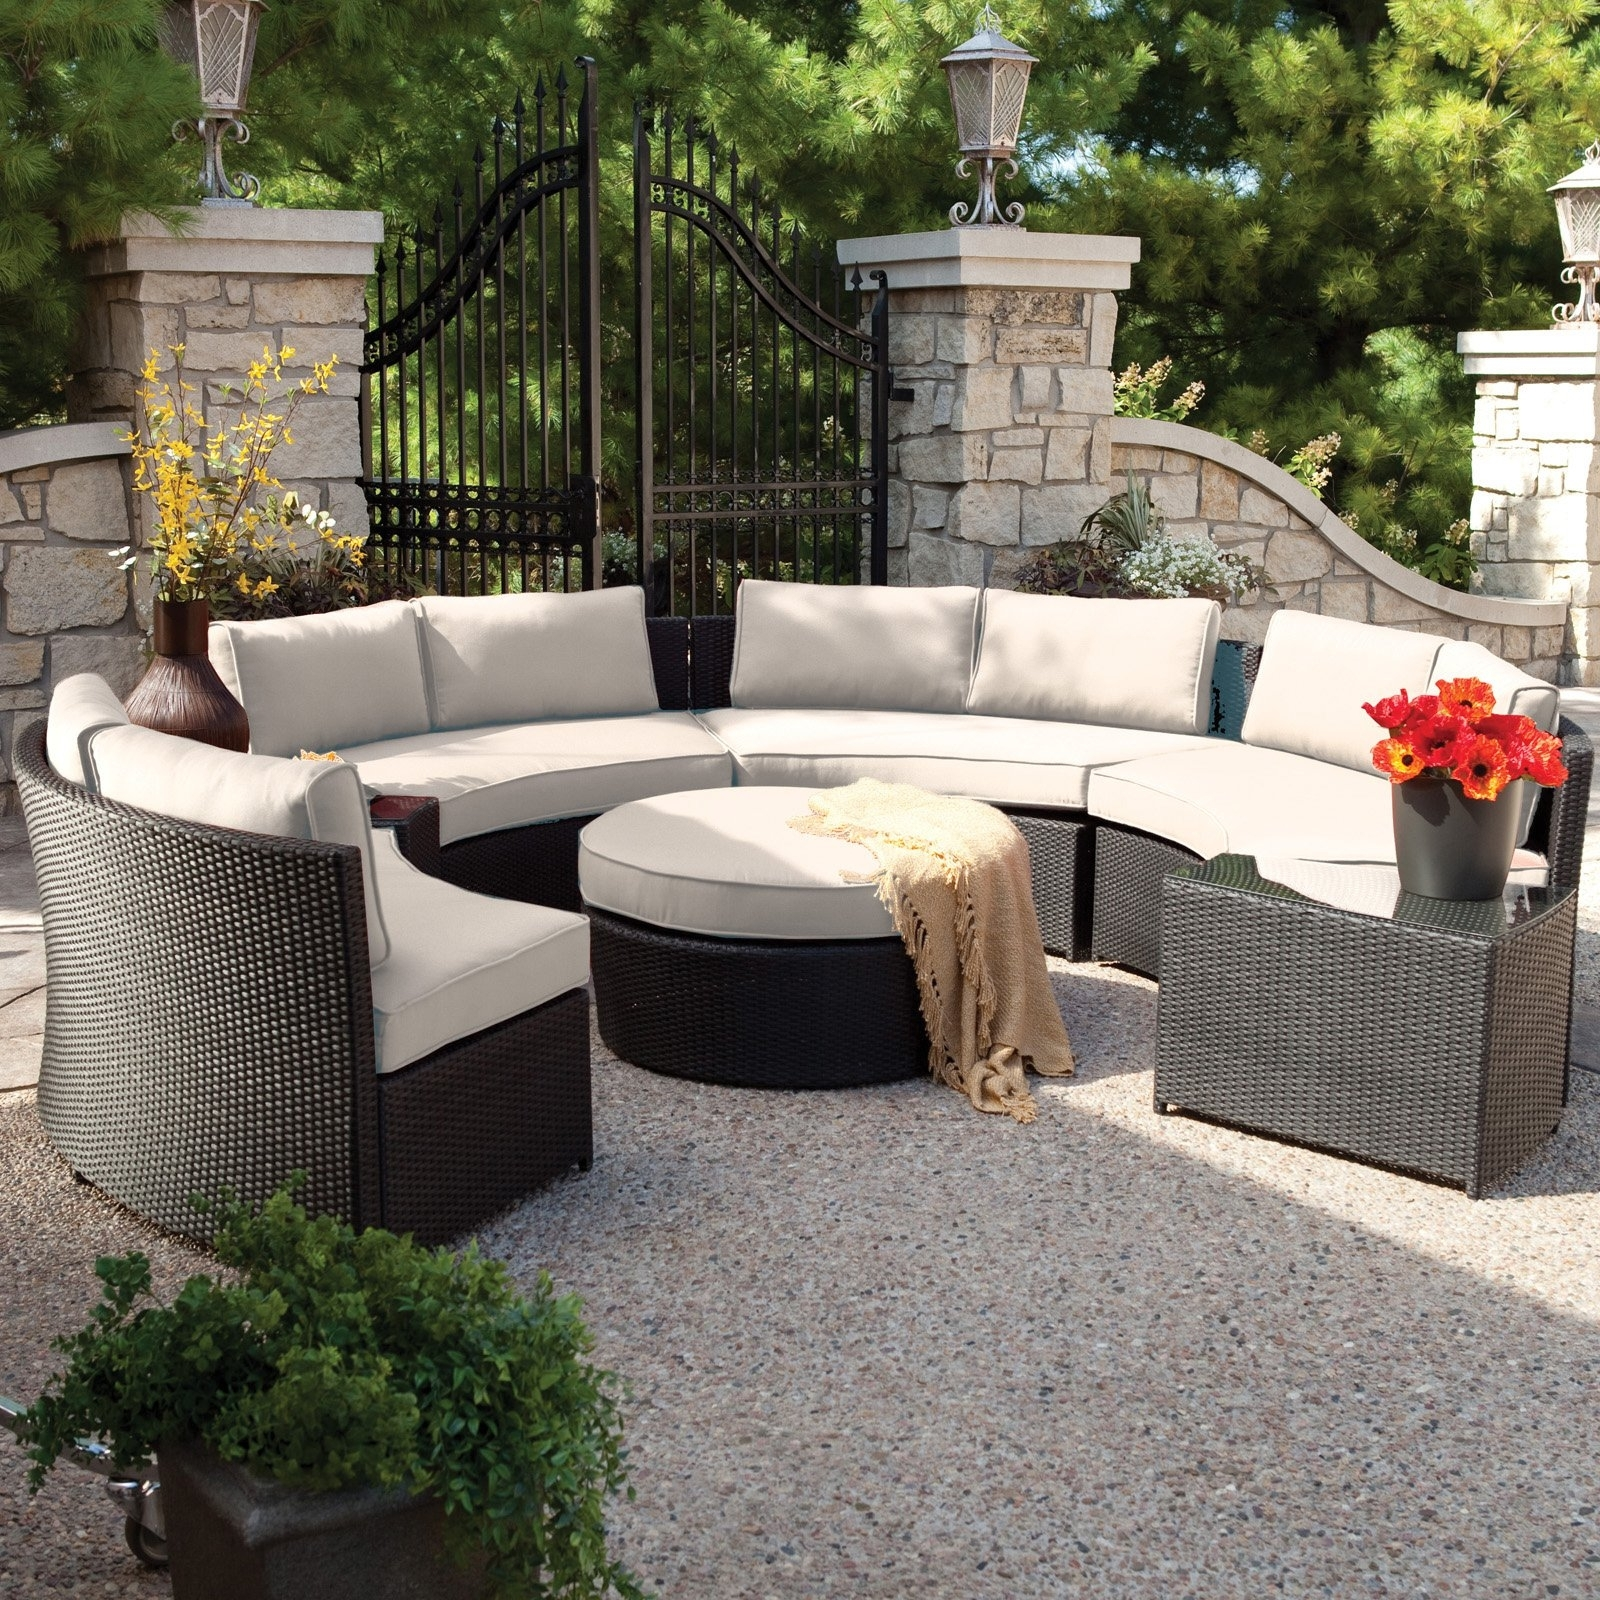 Patio Sofas Pertaining To Well Known Belham Living Meridian Round Outdoor Wicker Patio Furniture Set (View 3 of 20)